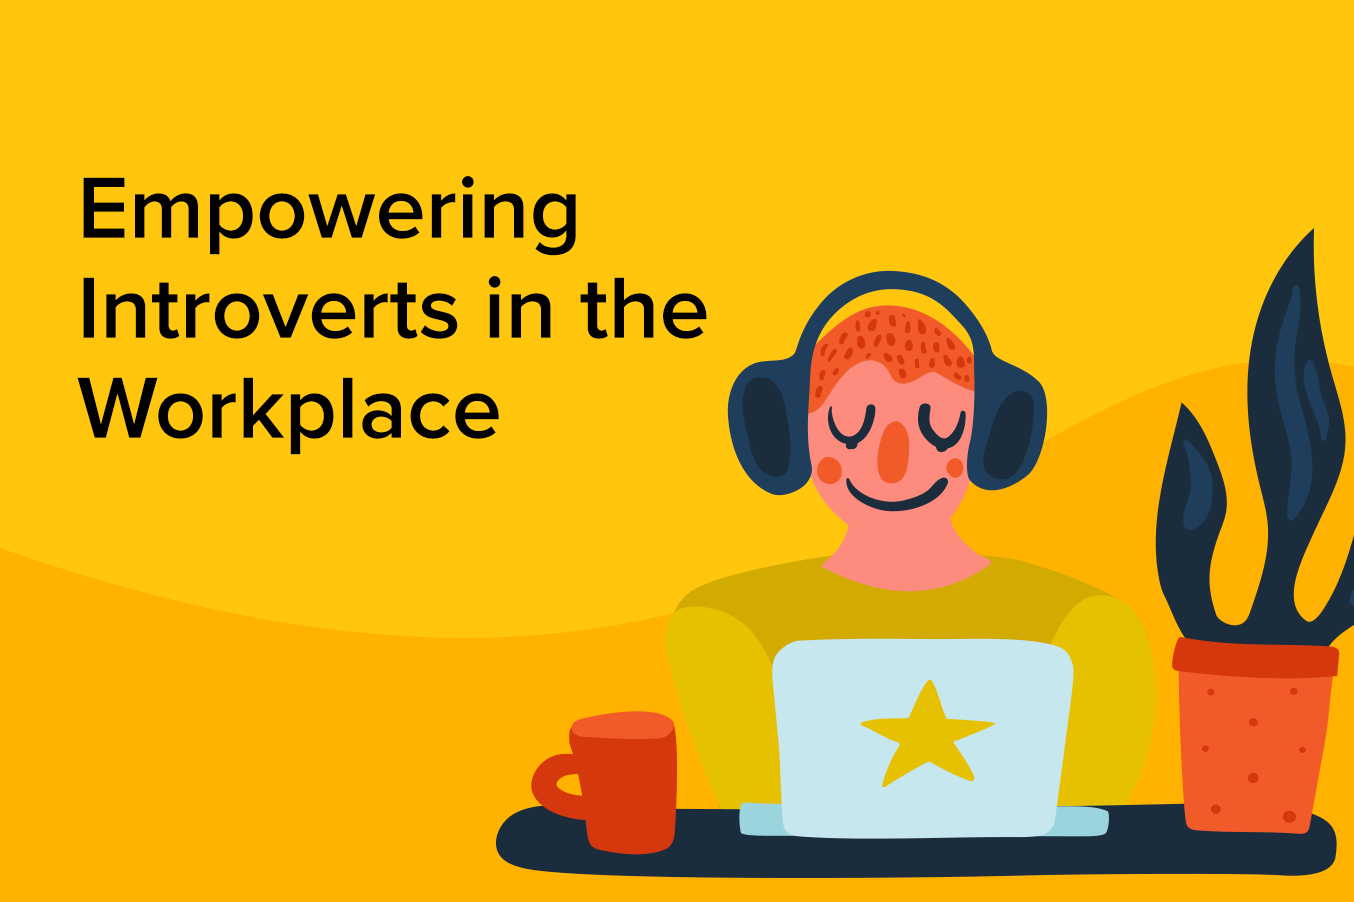 Introverts bring value to workplaces